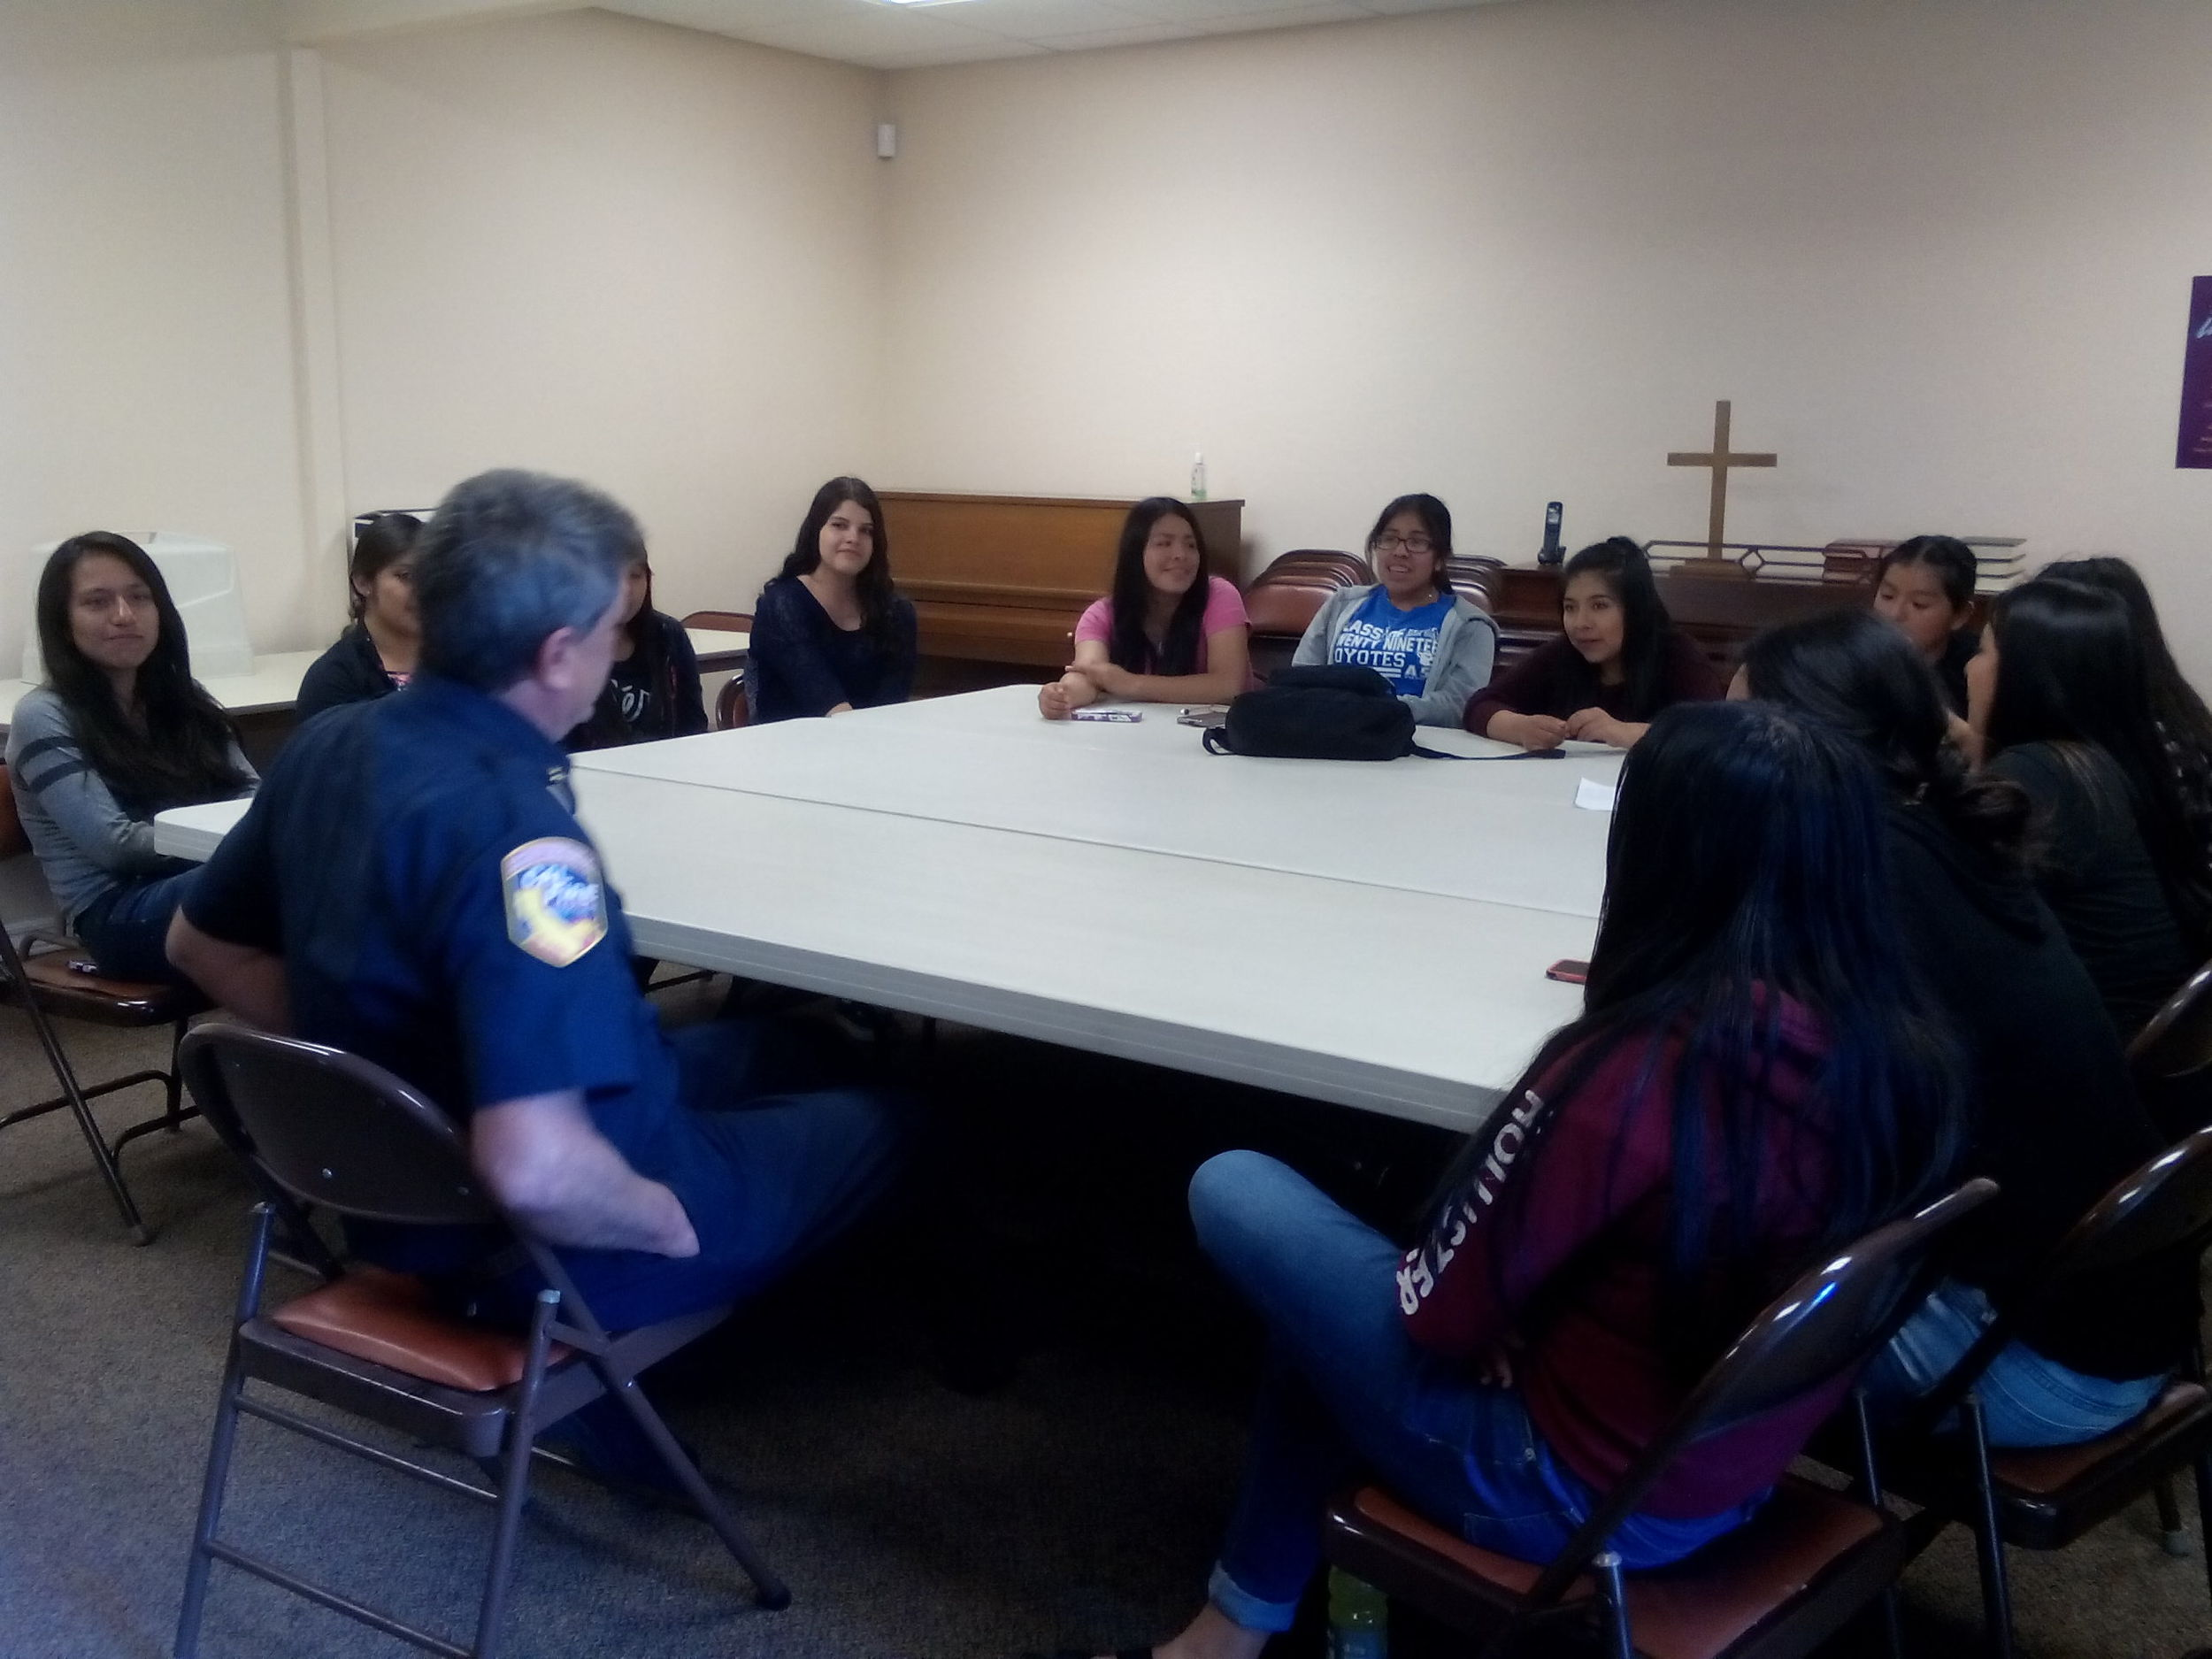 A forestry specialist from Cal Fire visited Madera Youth Leaders to talk about tree planting. He covered topics such as drought tolerant trees, best time of year to plant, and greenhouse gas reduction. Our 3-year long tree planting project begins in October 2016. We are planting several trees at 3 schools, and later at 3 parks. We will be planting Chinese Pistachio, Chinese Elm, and Southern Live Oak trees. In the meantime, we're going to learn more about these topics and recruit volunteers to help us plant. If you would like to volunteer, please call the MCCJ office at (559) 661-1879